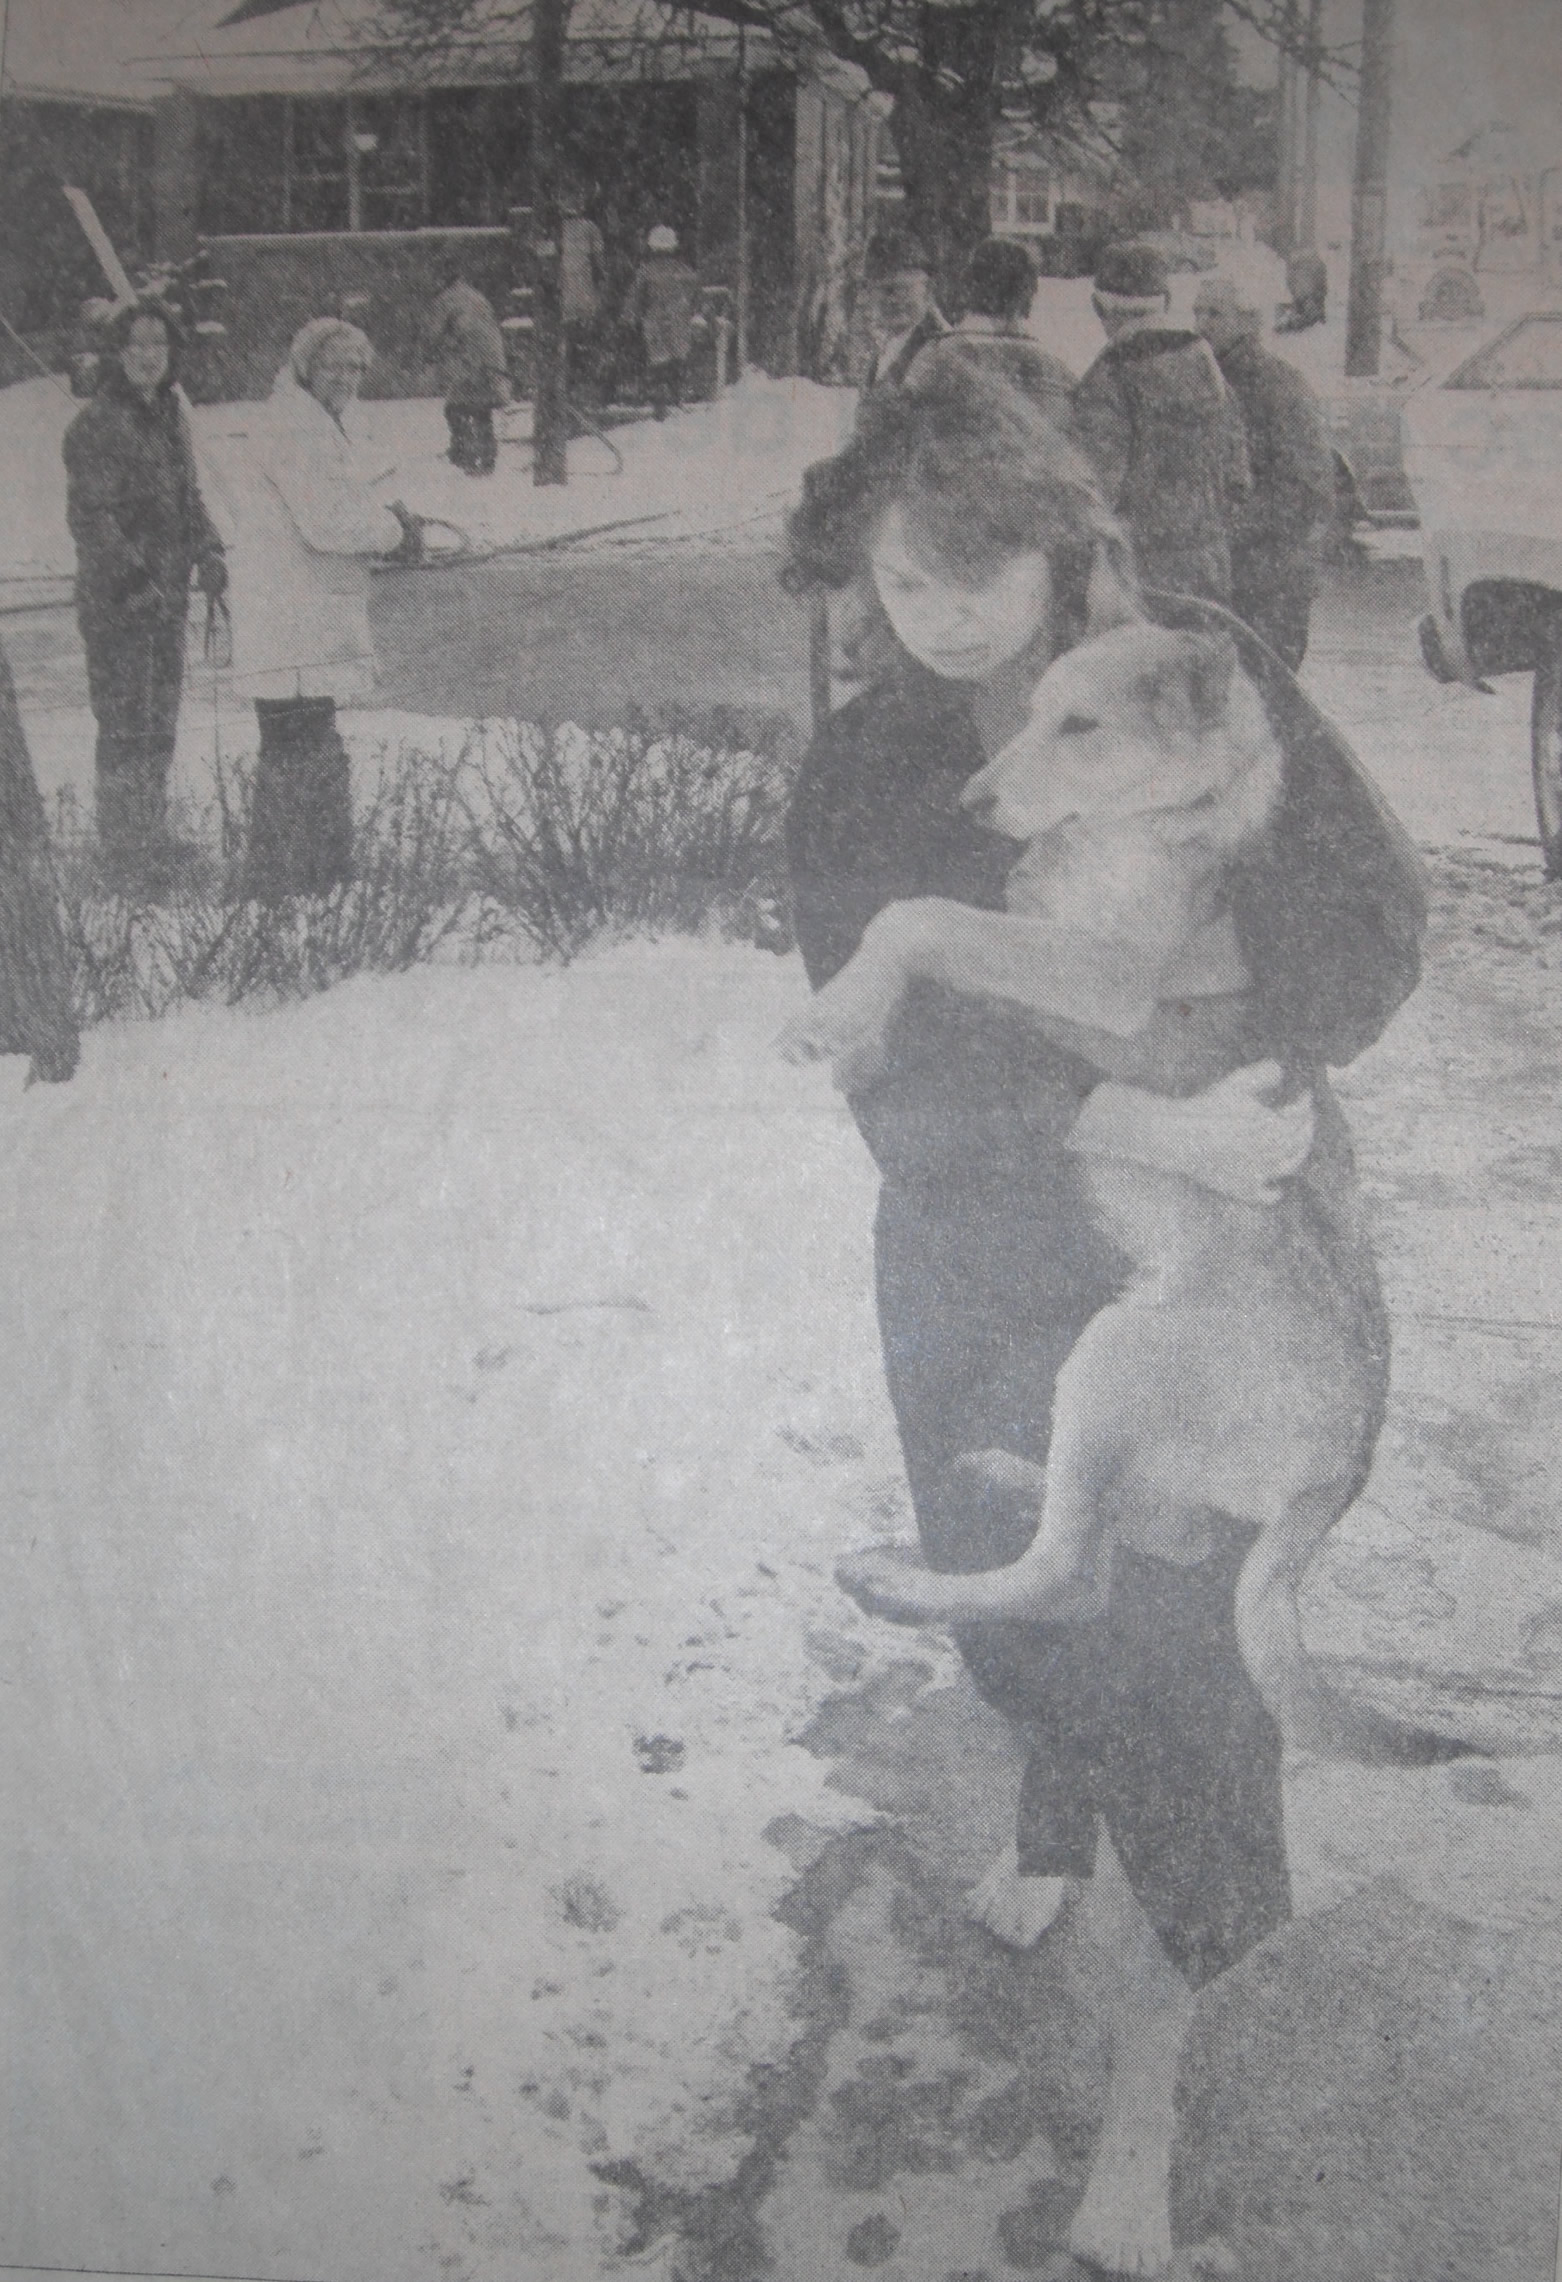 Catherine Barnes fled bare footed with her dog, escaped the blaze.